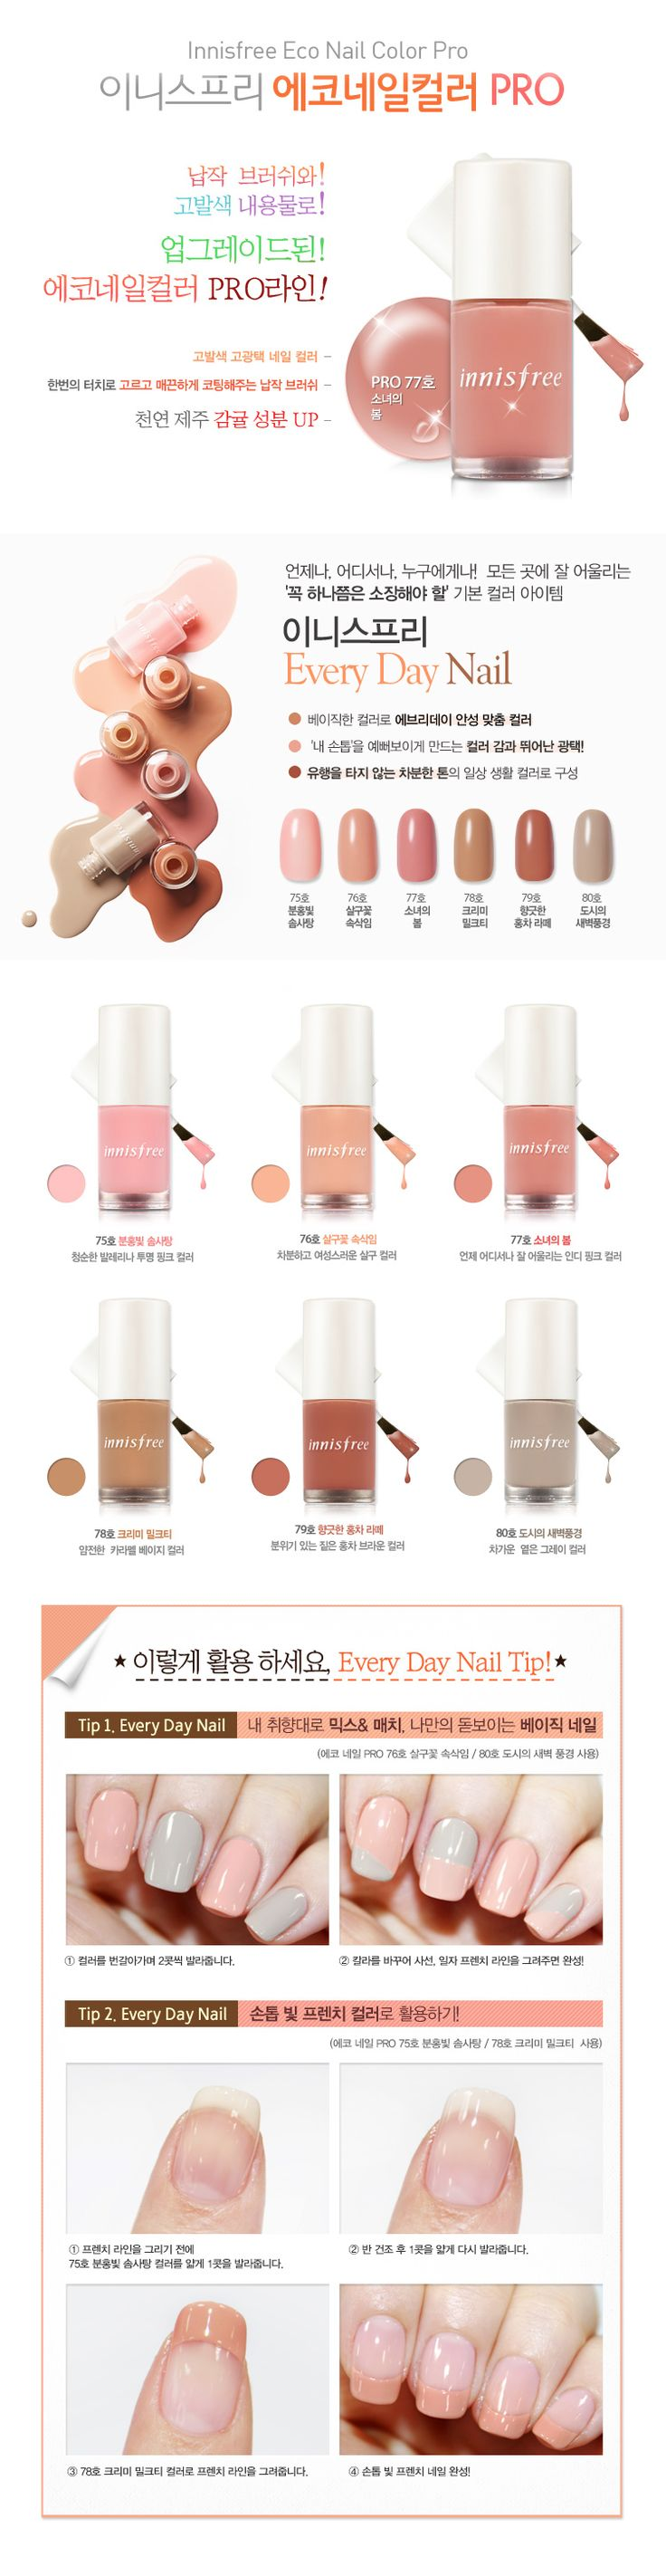 Innisfree Eco Nail Color Pro   The Cutest Makeup